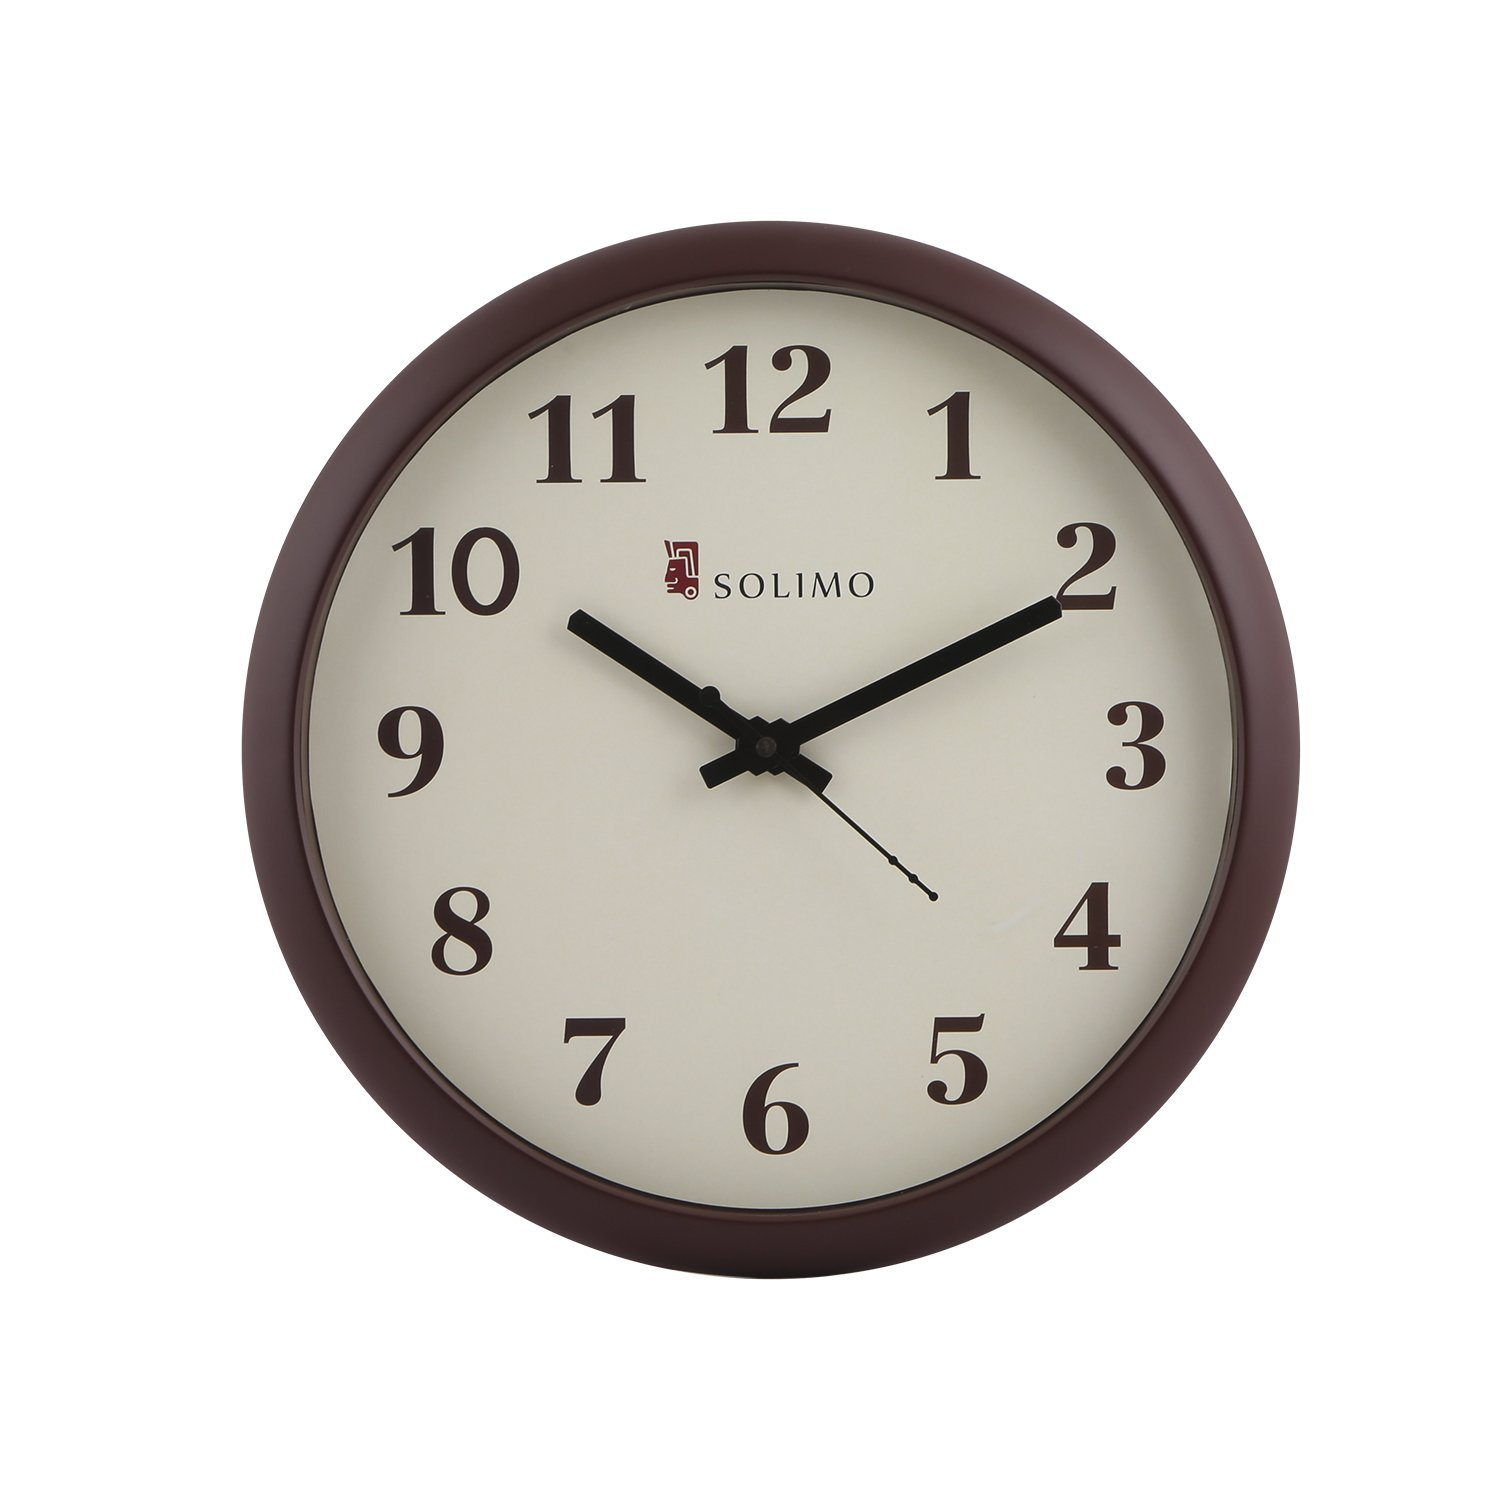 Wall clock buy wall clock online at best prices in india amazon solimo 11 inch wall clock step movement brown frame amipublicfo Gallery